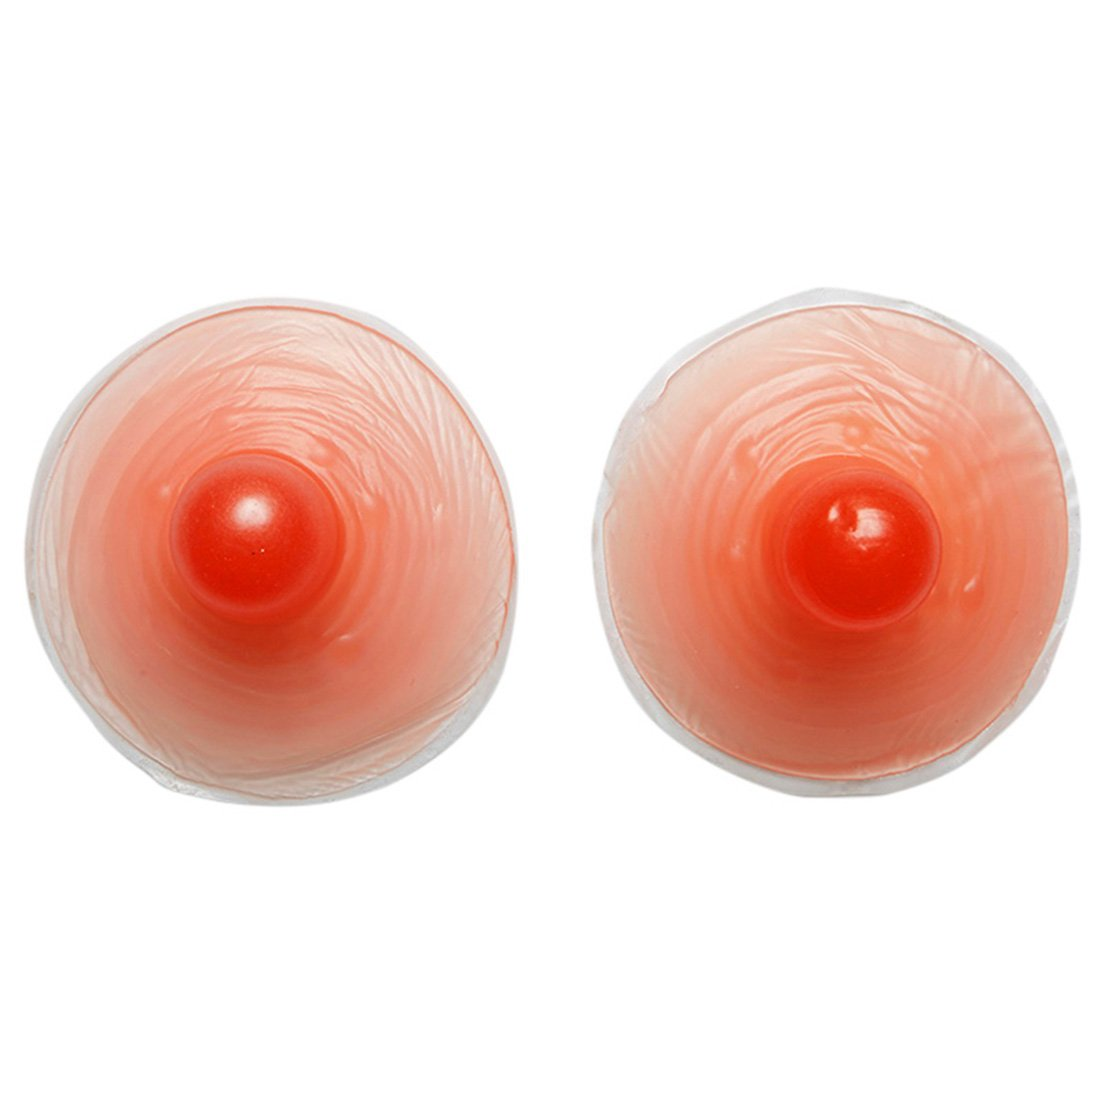 Hengfey Silicone Nipple Breast Covers Forms Natural Attachable (Red, one pair) YV0032/HFCA